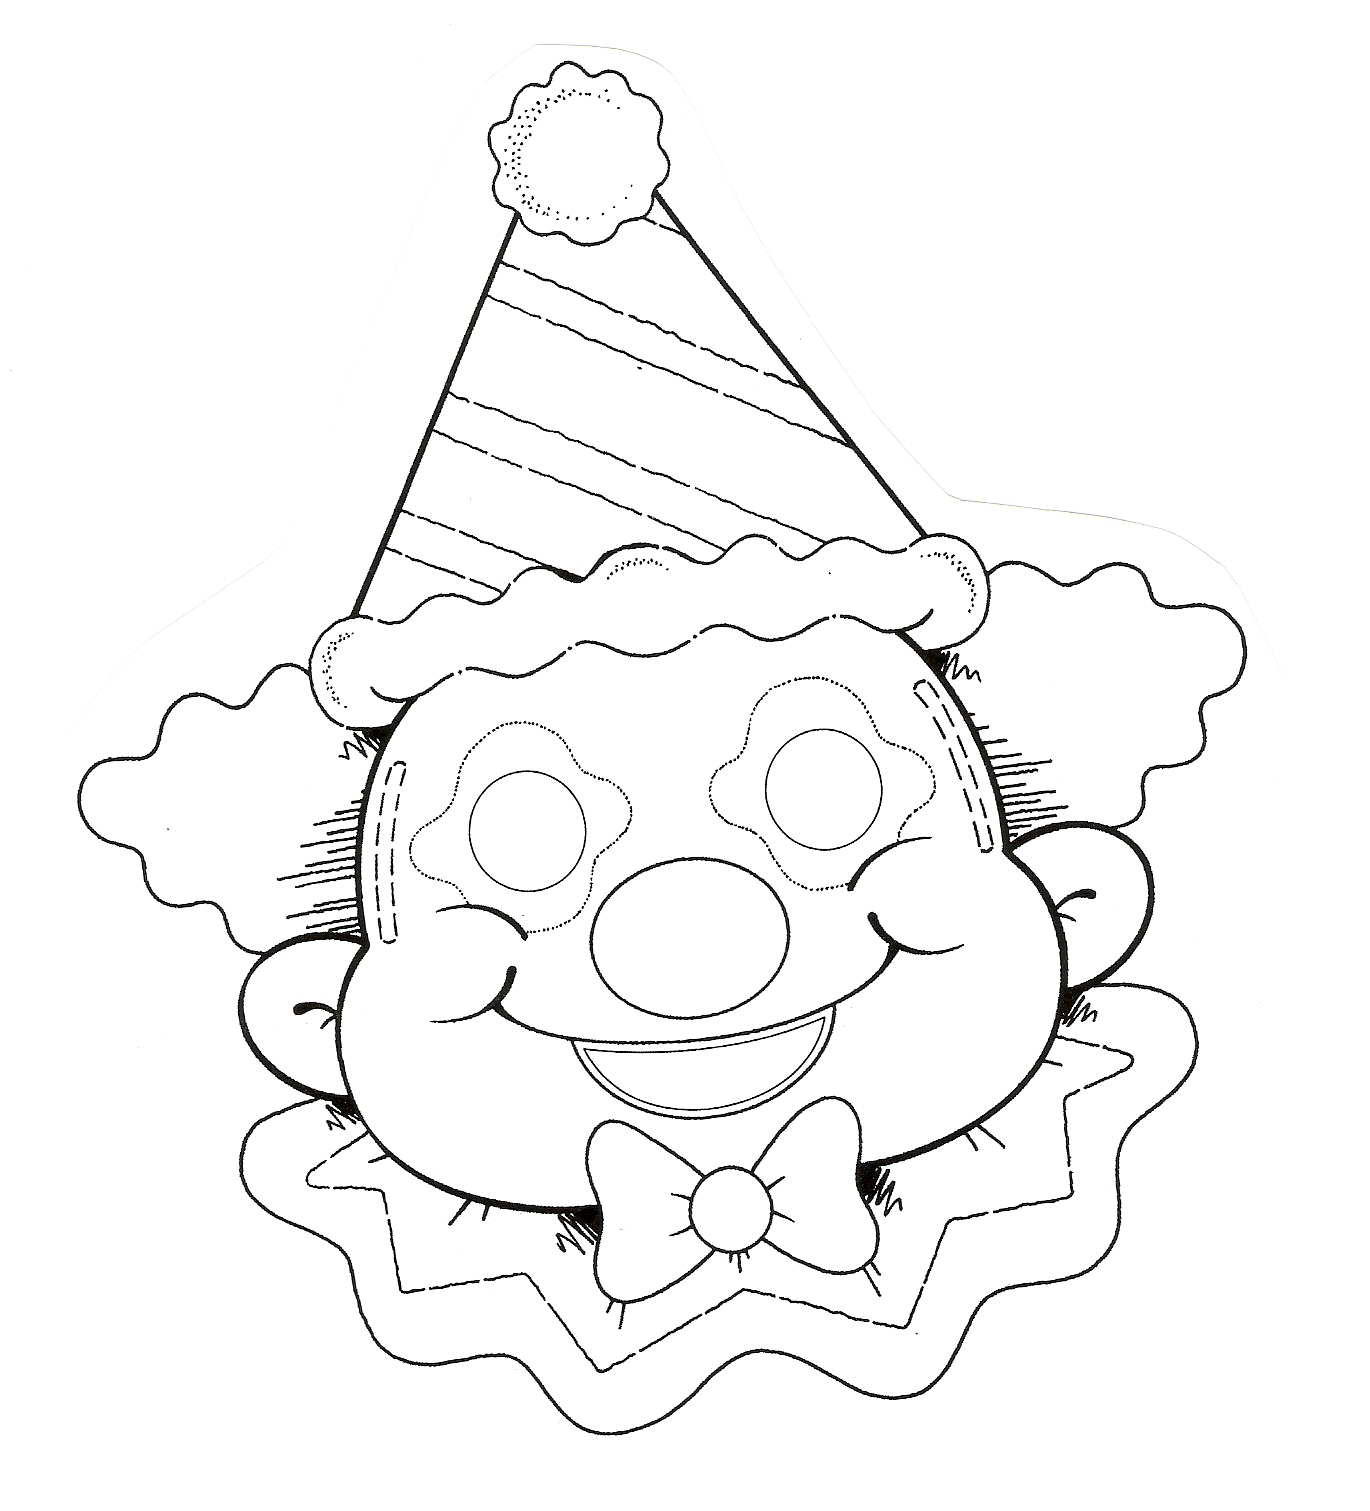 free go kart coloring pages - photo#18